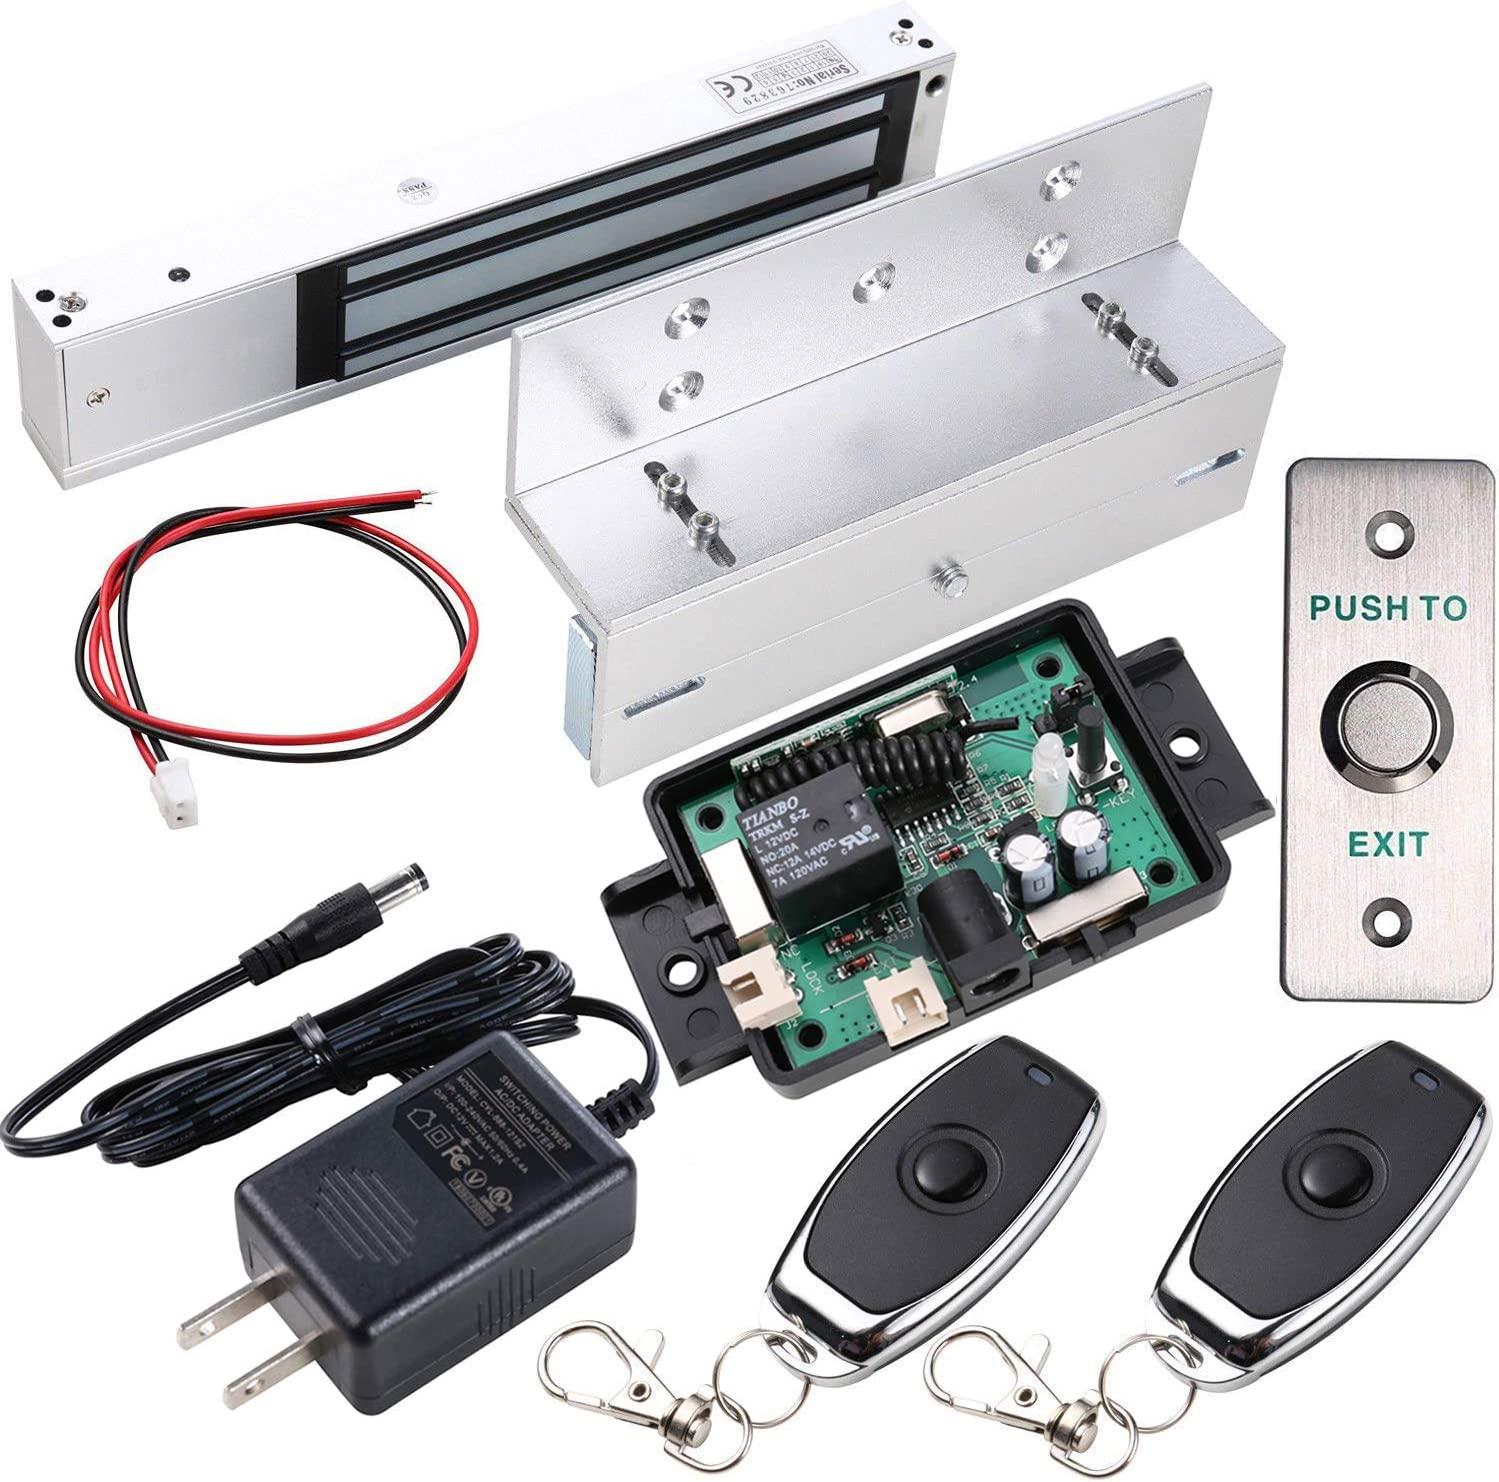 UHPPOTE Access Control Inswinging Door 600Lbs Electromagnetic Lock Kit with Bracket Remote Control